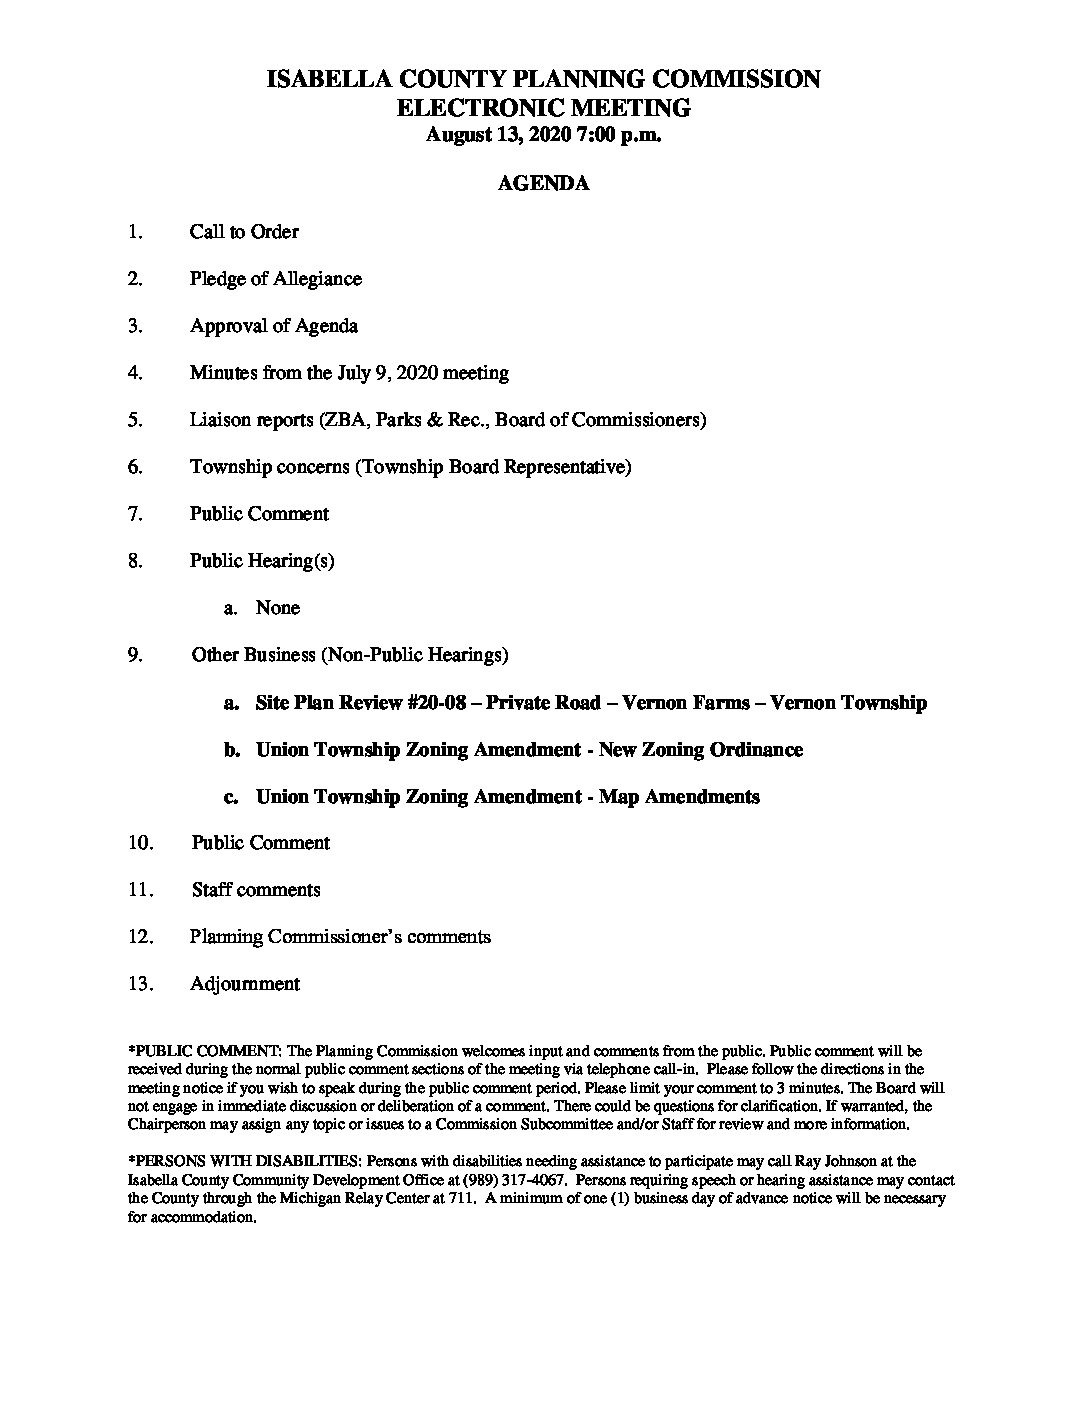 preview image of first page August 13, 2020 Agenda